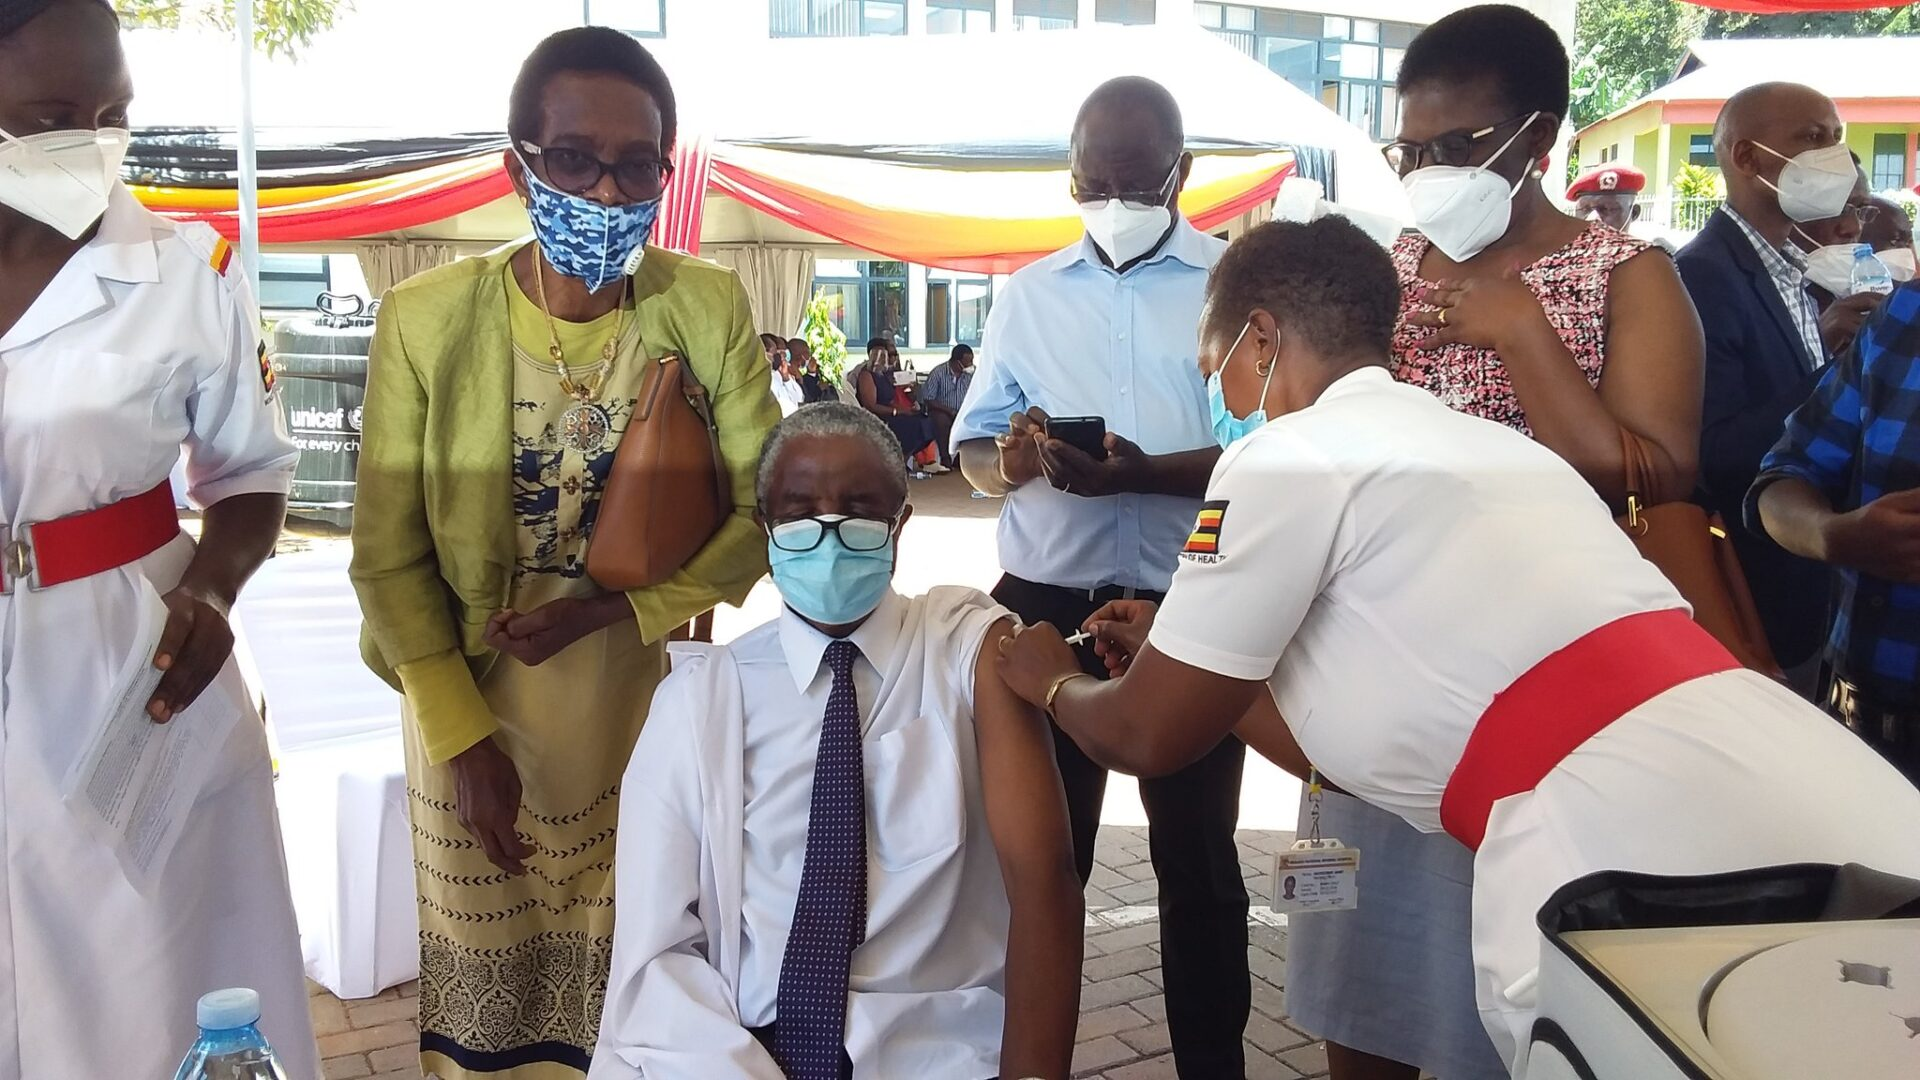 PHOTOS: Health Minister Aceng, PS Atwine, Frontline Health Workers First People To Receive COVID-19 Vaccine